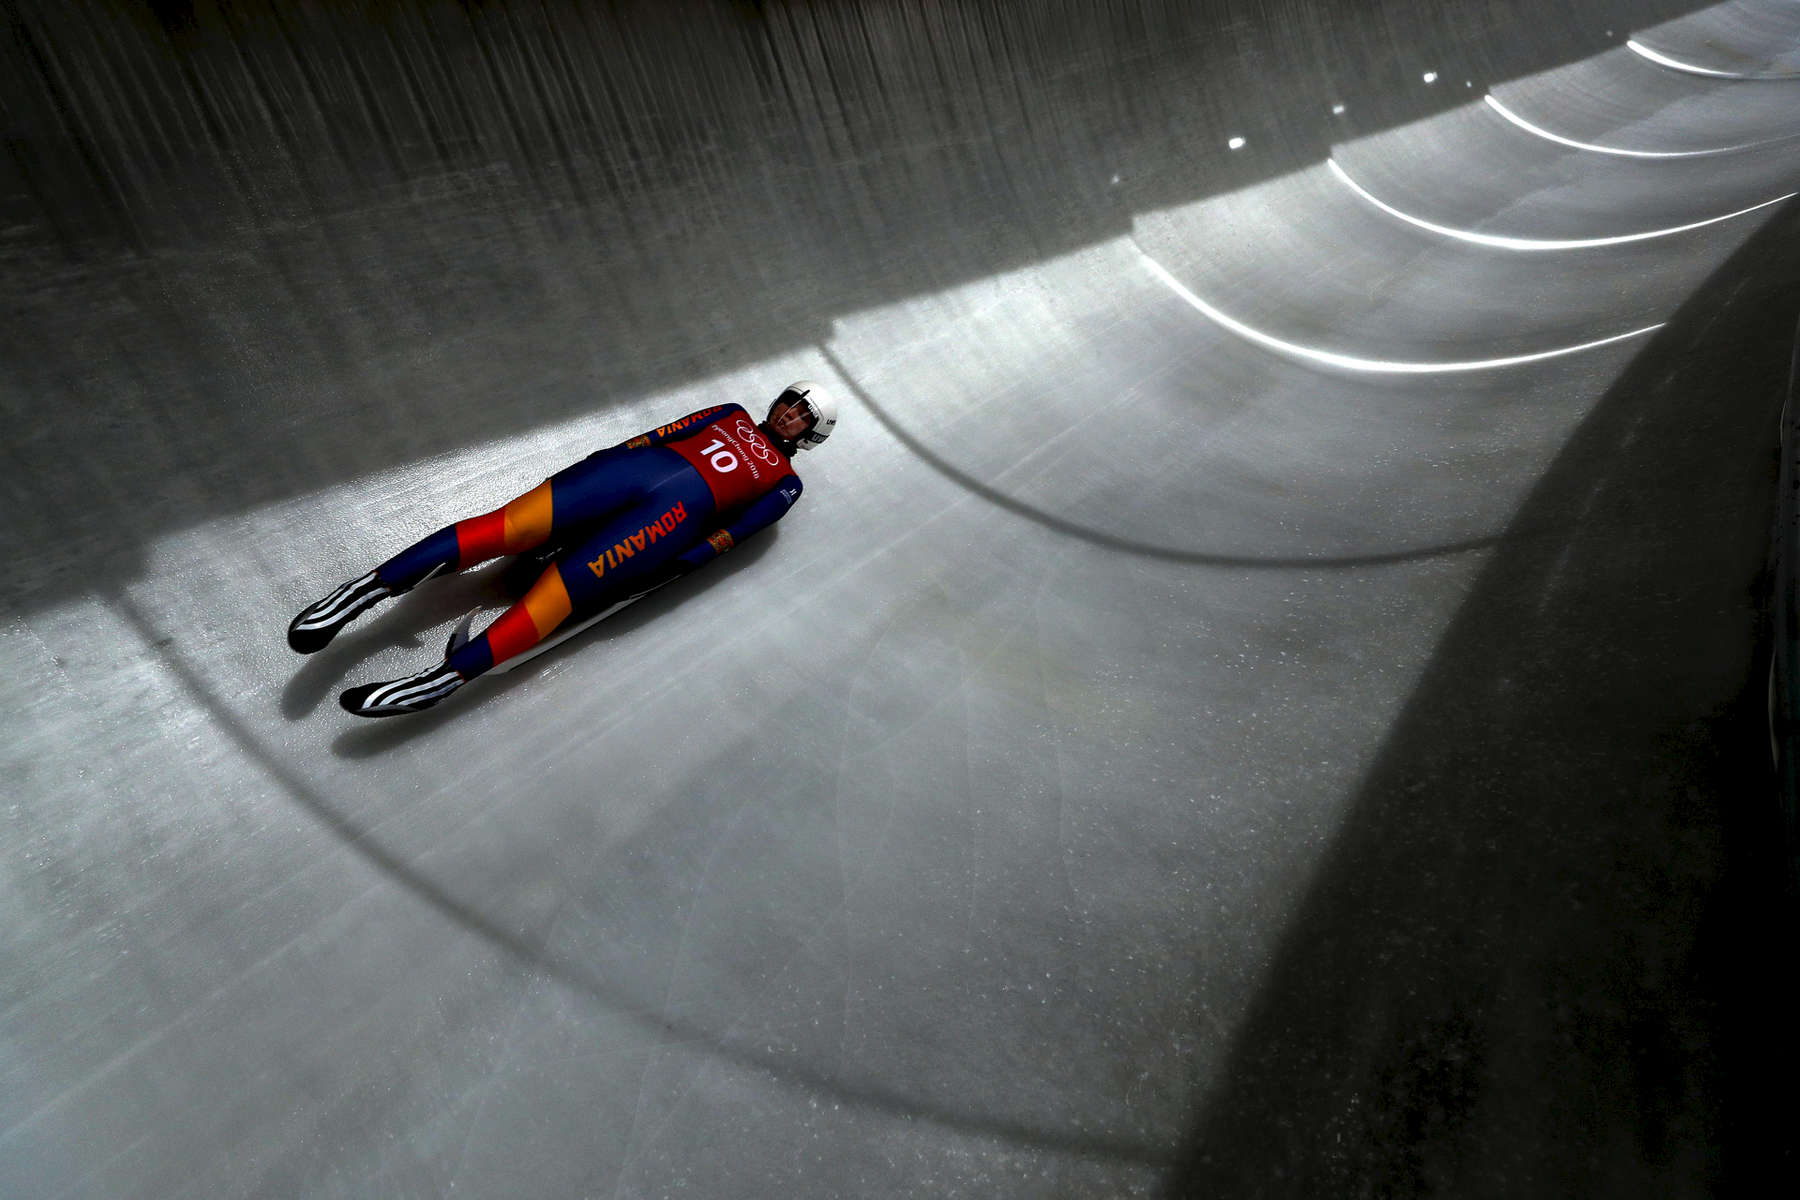 Luger Raluca Stramaturaru trains ahead of the PyeongChang 2018 Winter Olympic Games at the Olympic Sliding Centre  on February 6, 2018 in Pyeongchang-gun, South Korea.